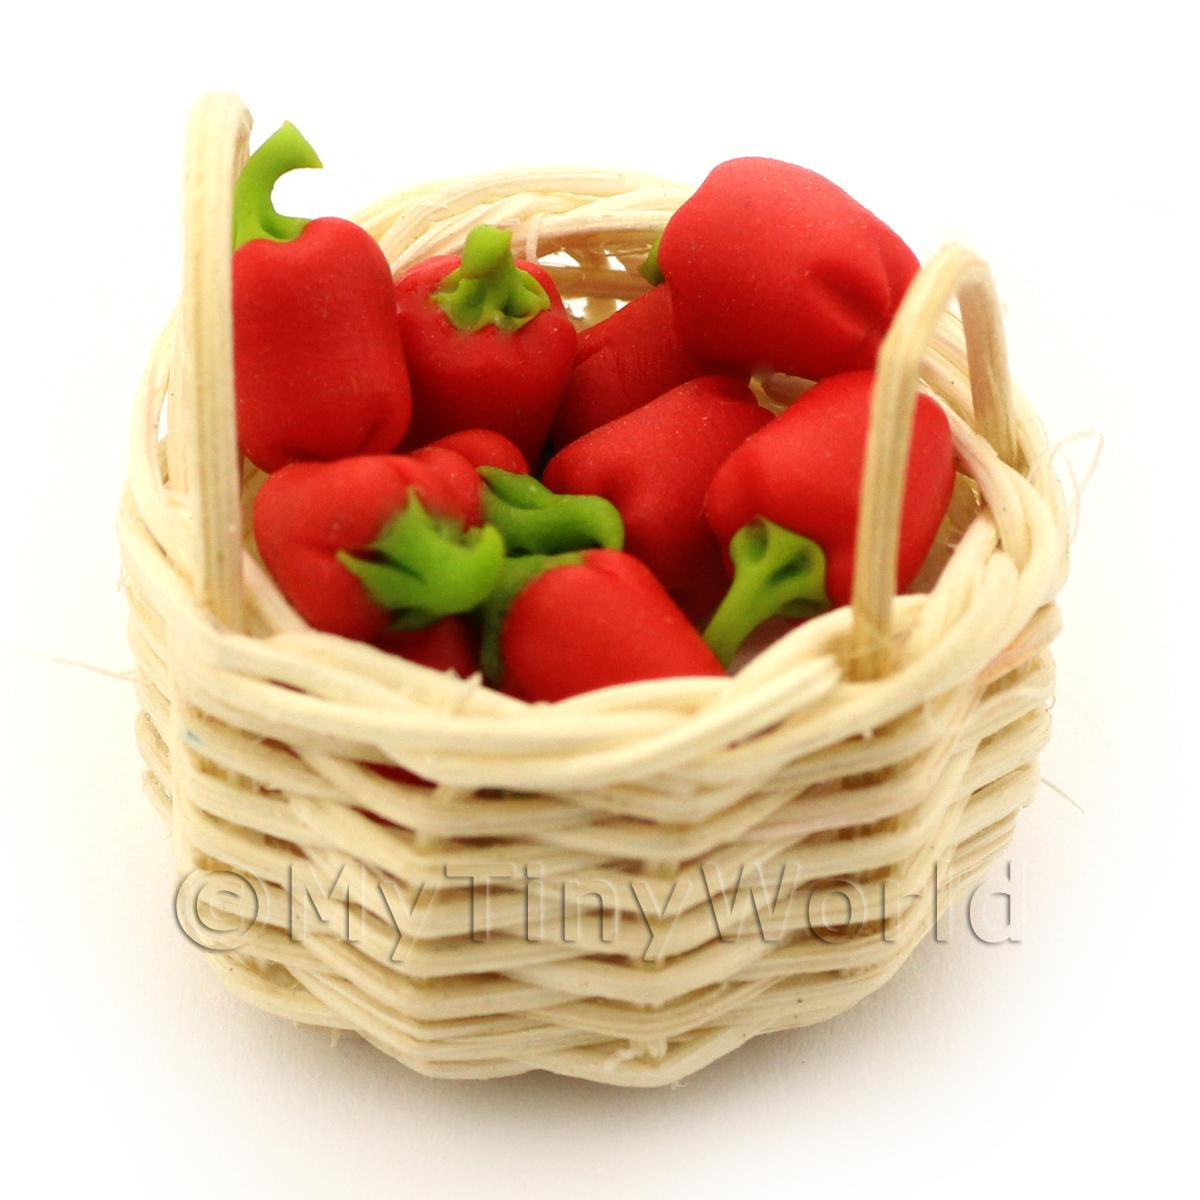 Dolls House Miniature Basket of Handmade Red Bell Peppers